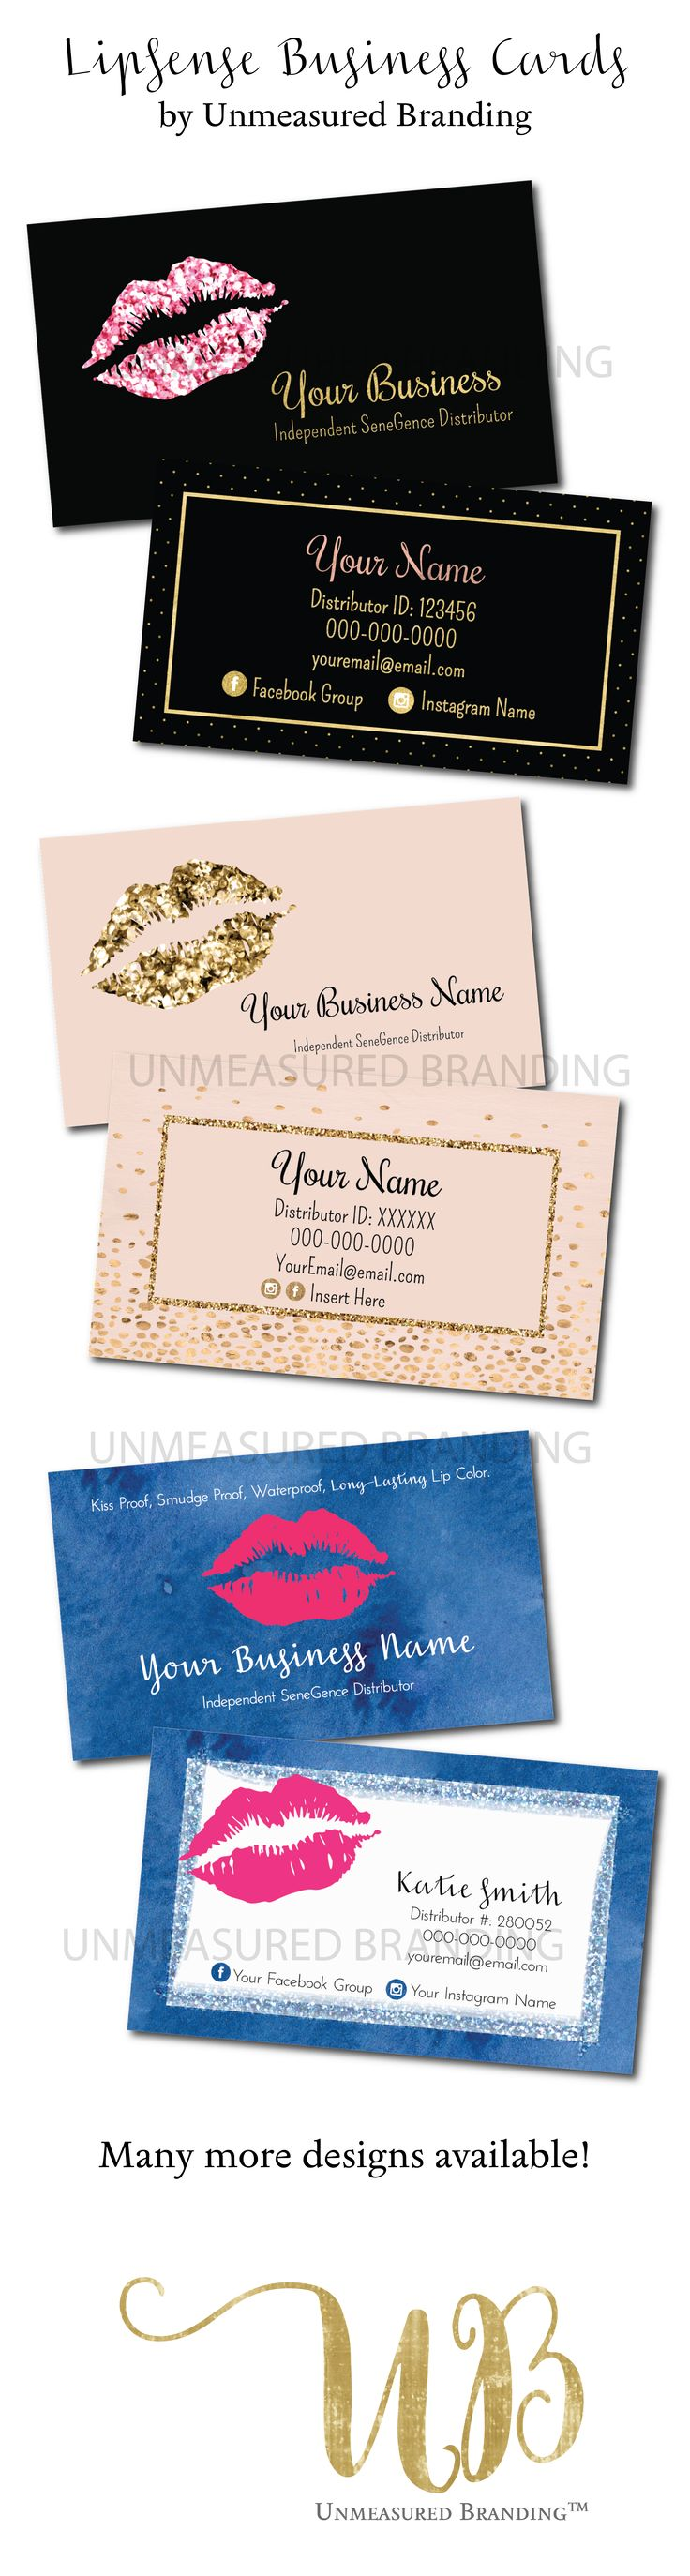 LipSense Business Cards, SeneGence Business Cards, LipSense Printables, Digital Downloads #LipSense #LipBoss #SeneGence